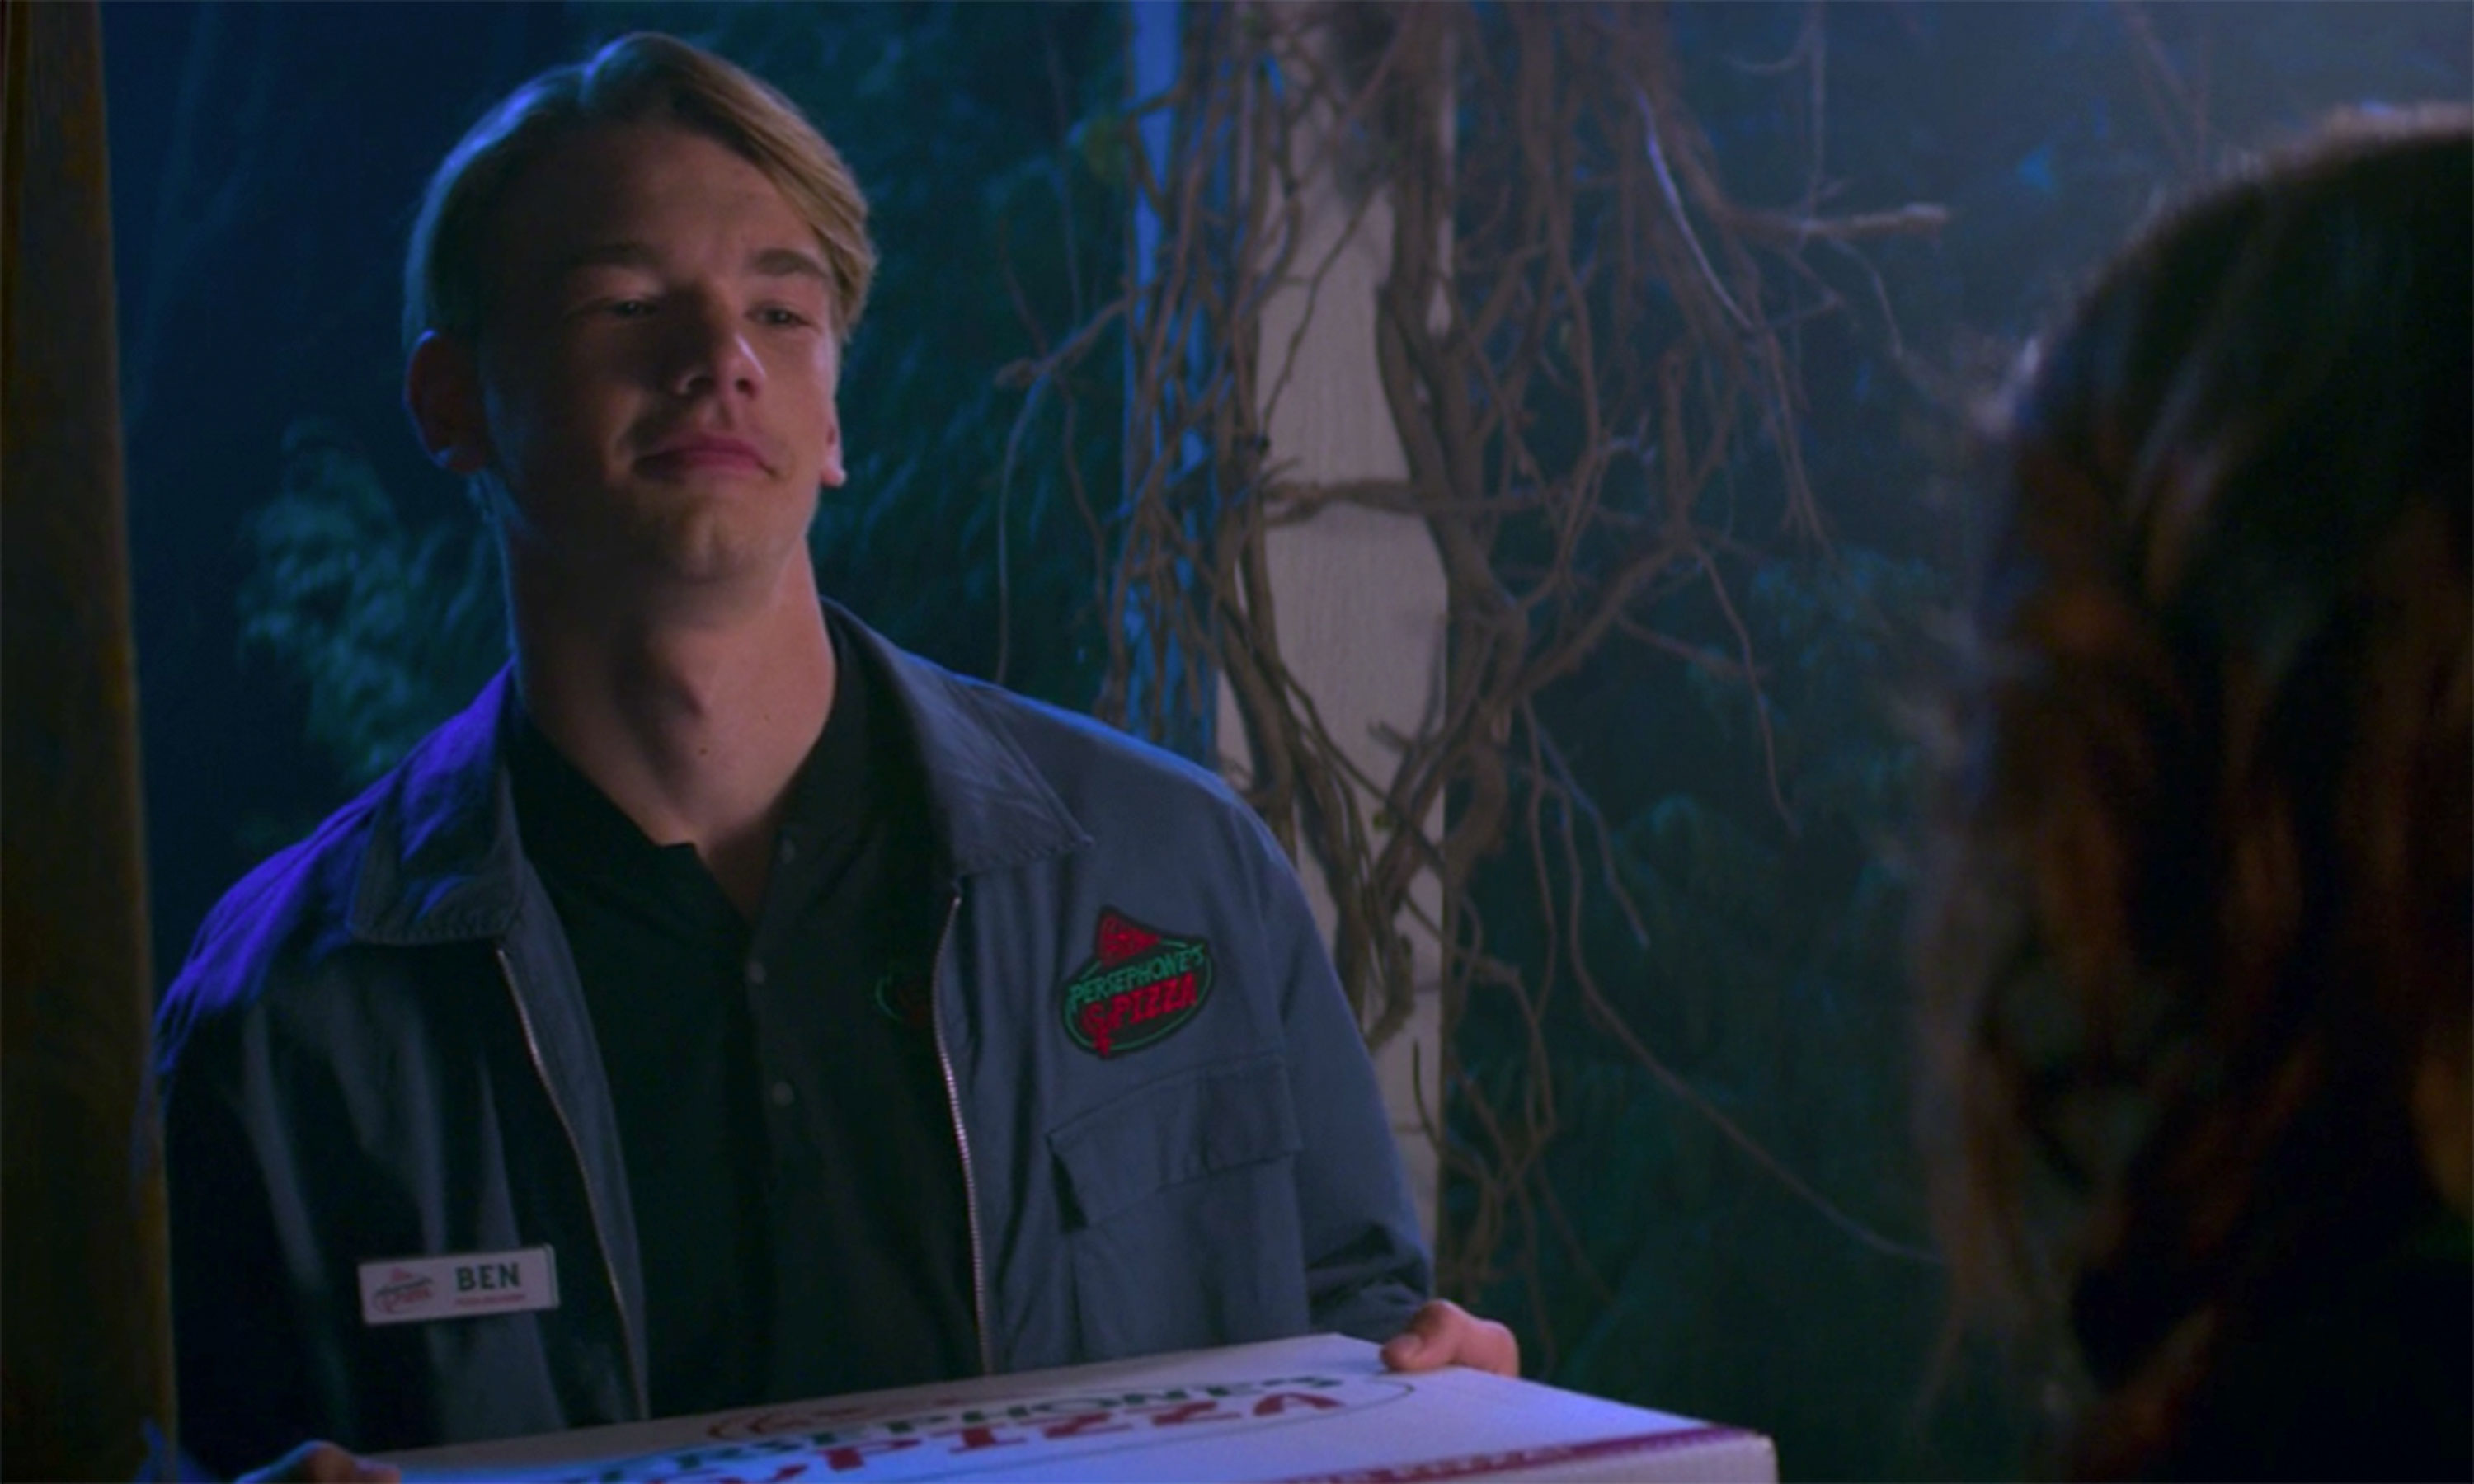 Ben delivering pizza on The Chilling Adventures of Sabrina